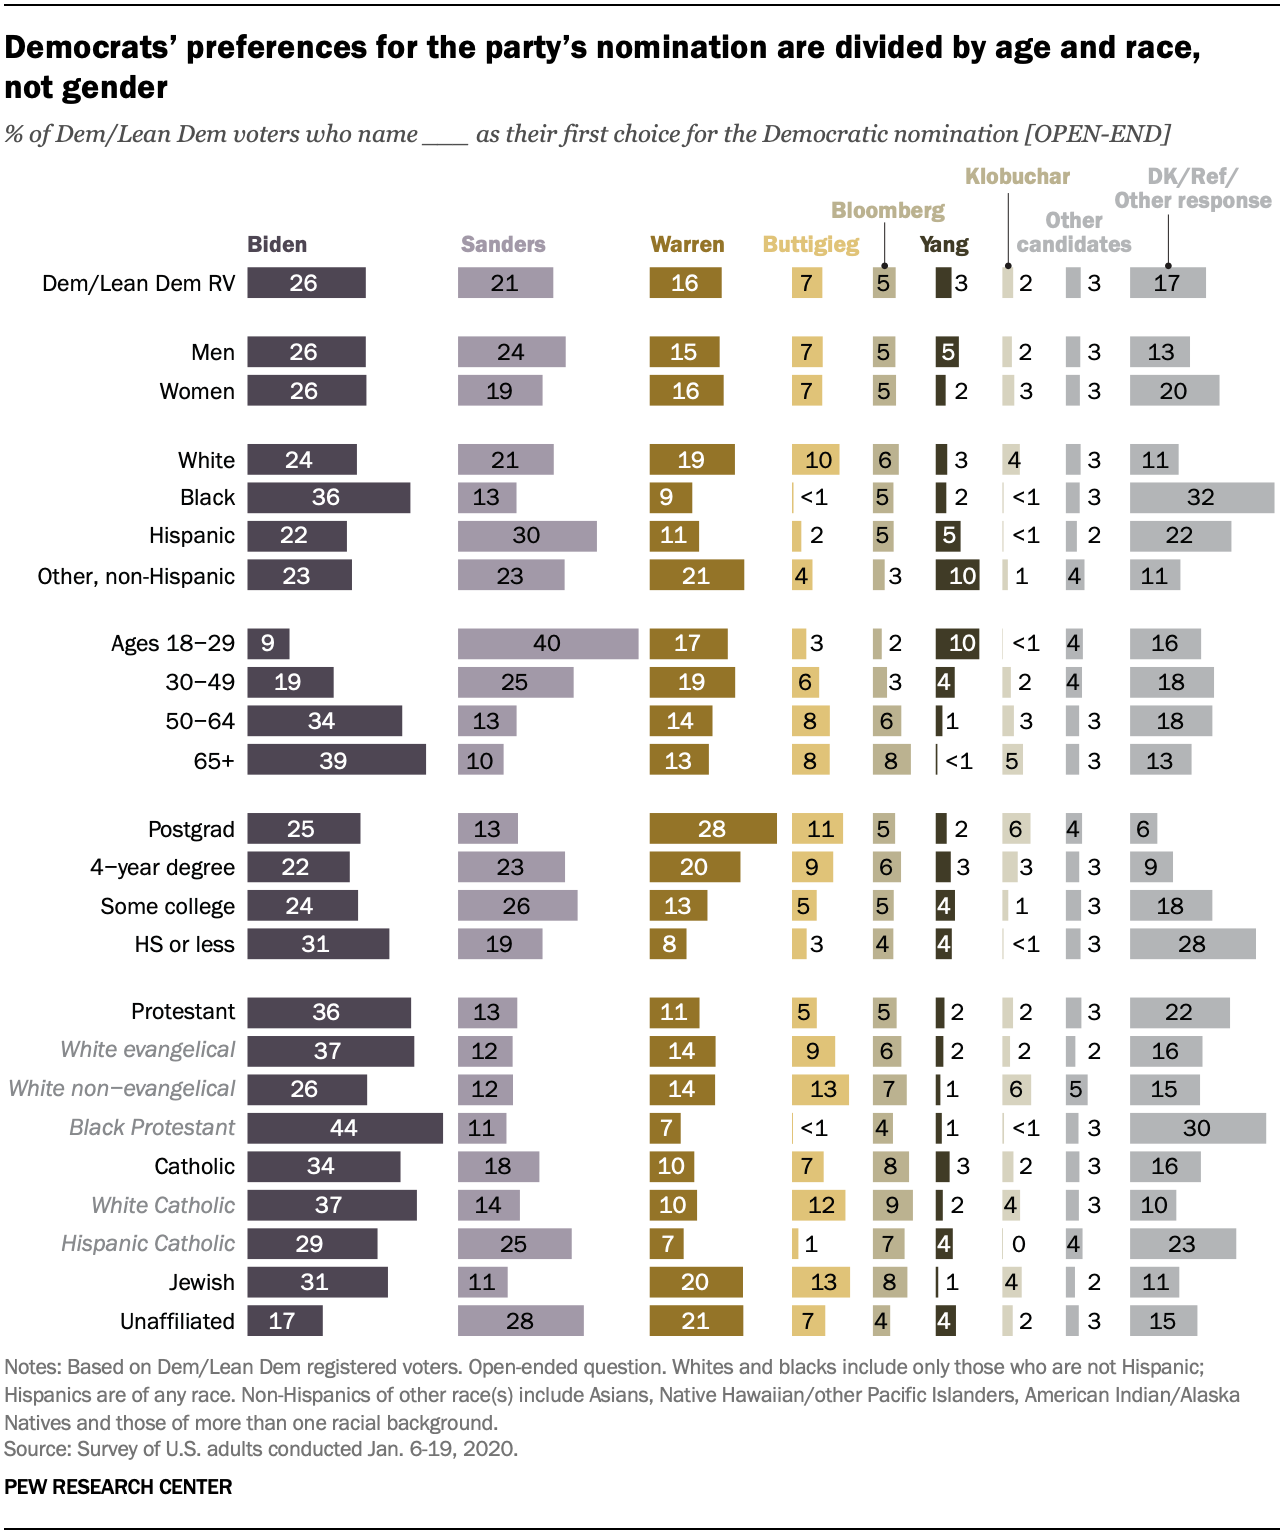 Chart shows Democrats' preferences for the party's nomination are divided by age and race, not gender